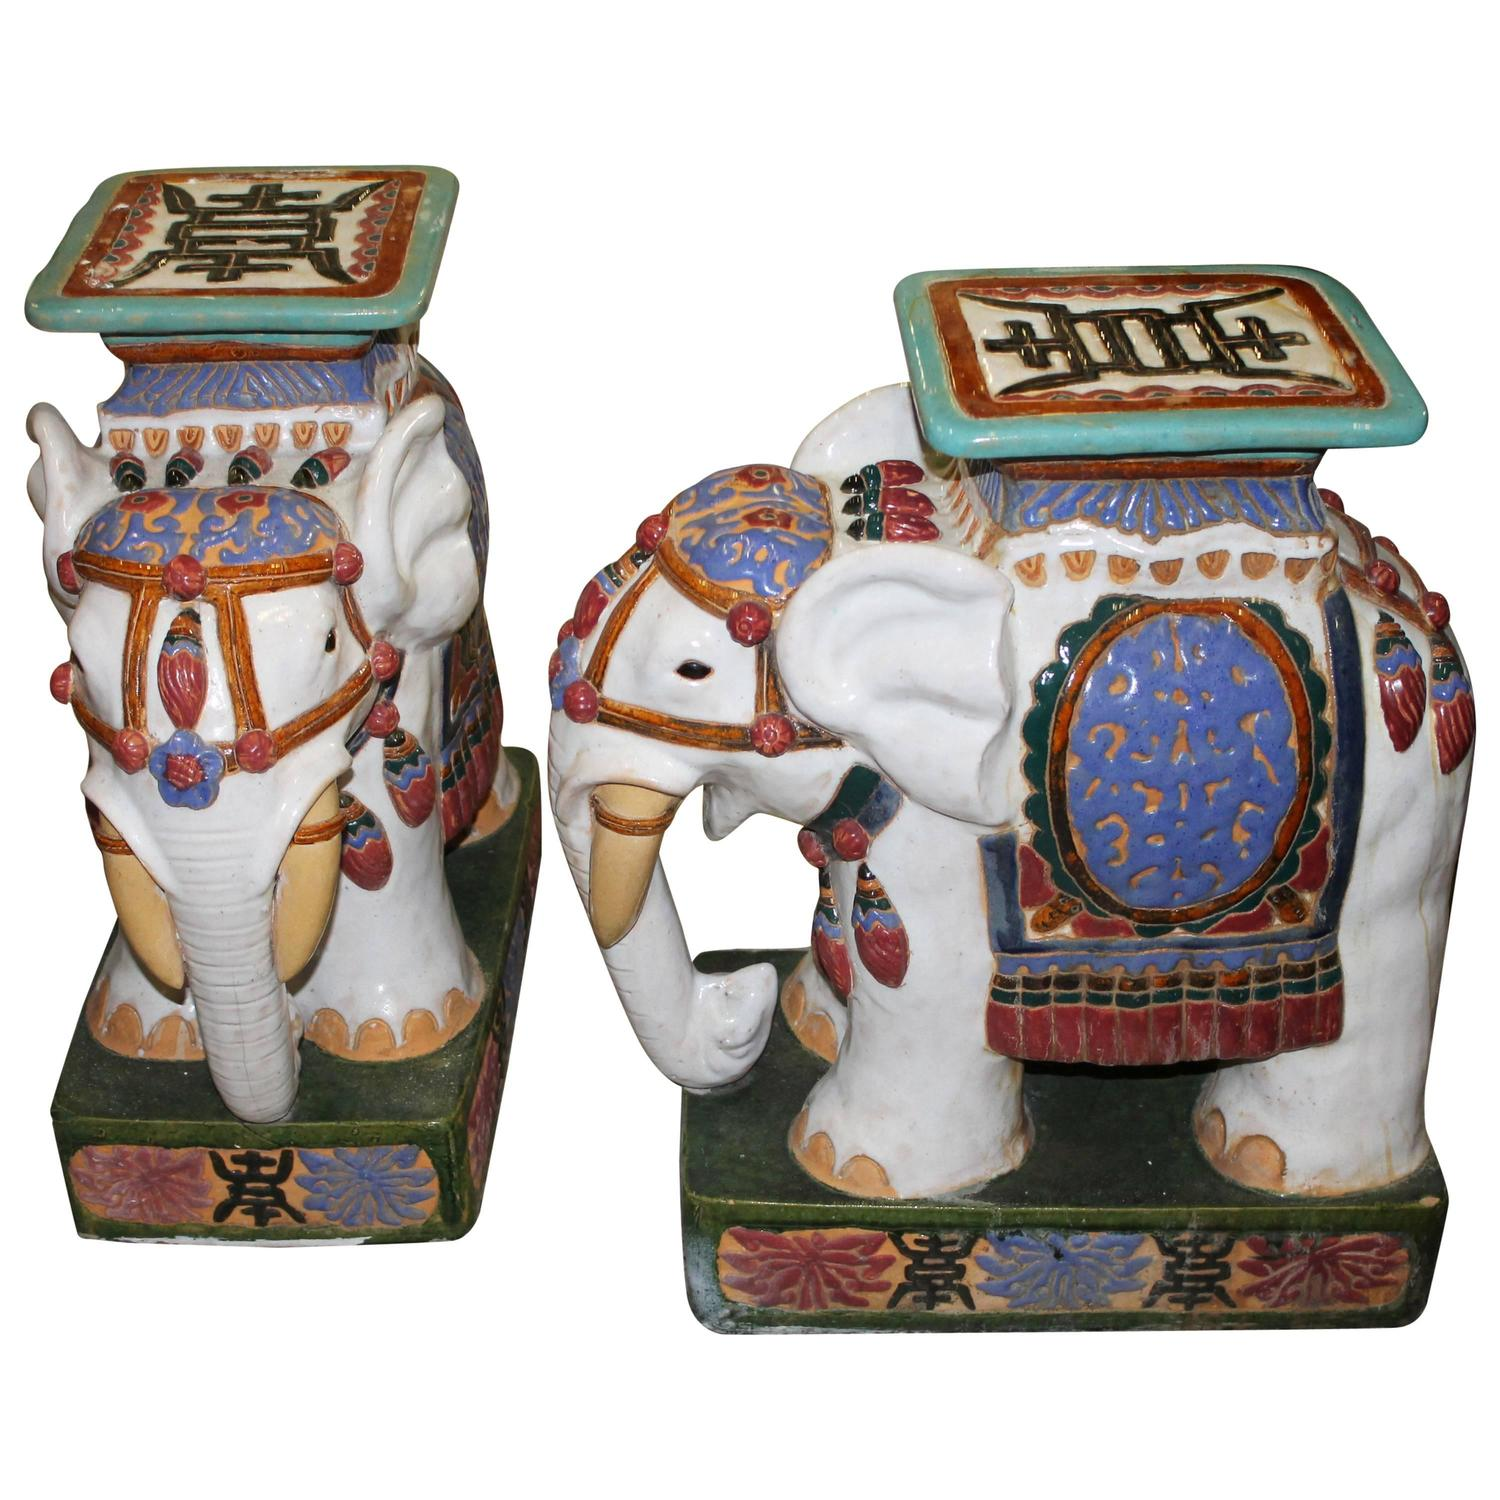 Pair of Vintage Elephant Garden Stools Stands Seats Hollywood Regency Plant at 1stdibs  sc 1 st  1stDibs & Pair of Vintage Elephant Garden Stools Stands Seats Hollywood ... islam-shia.org